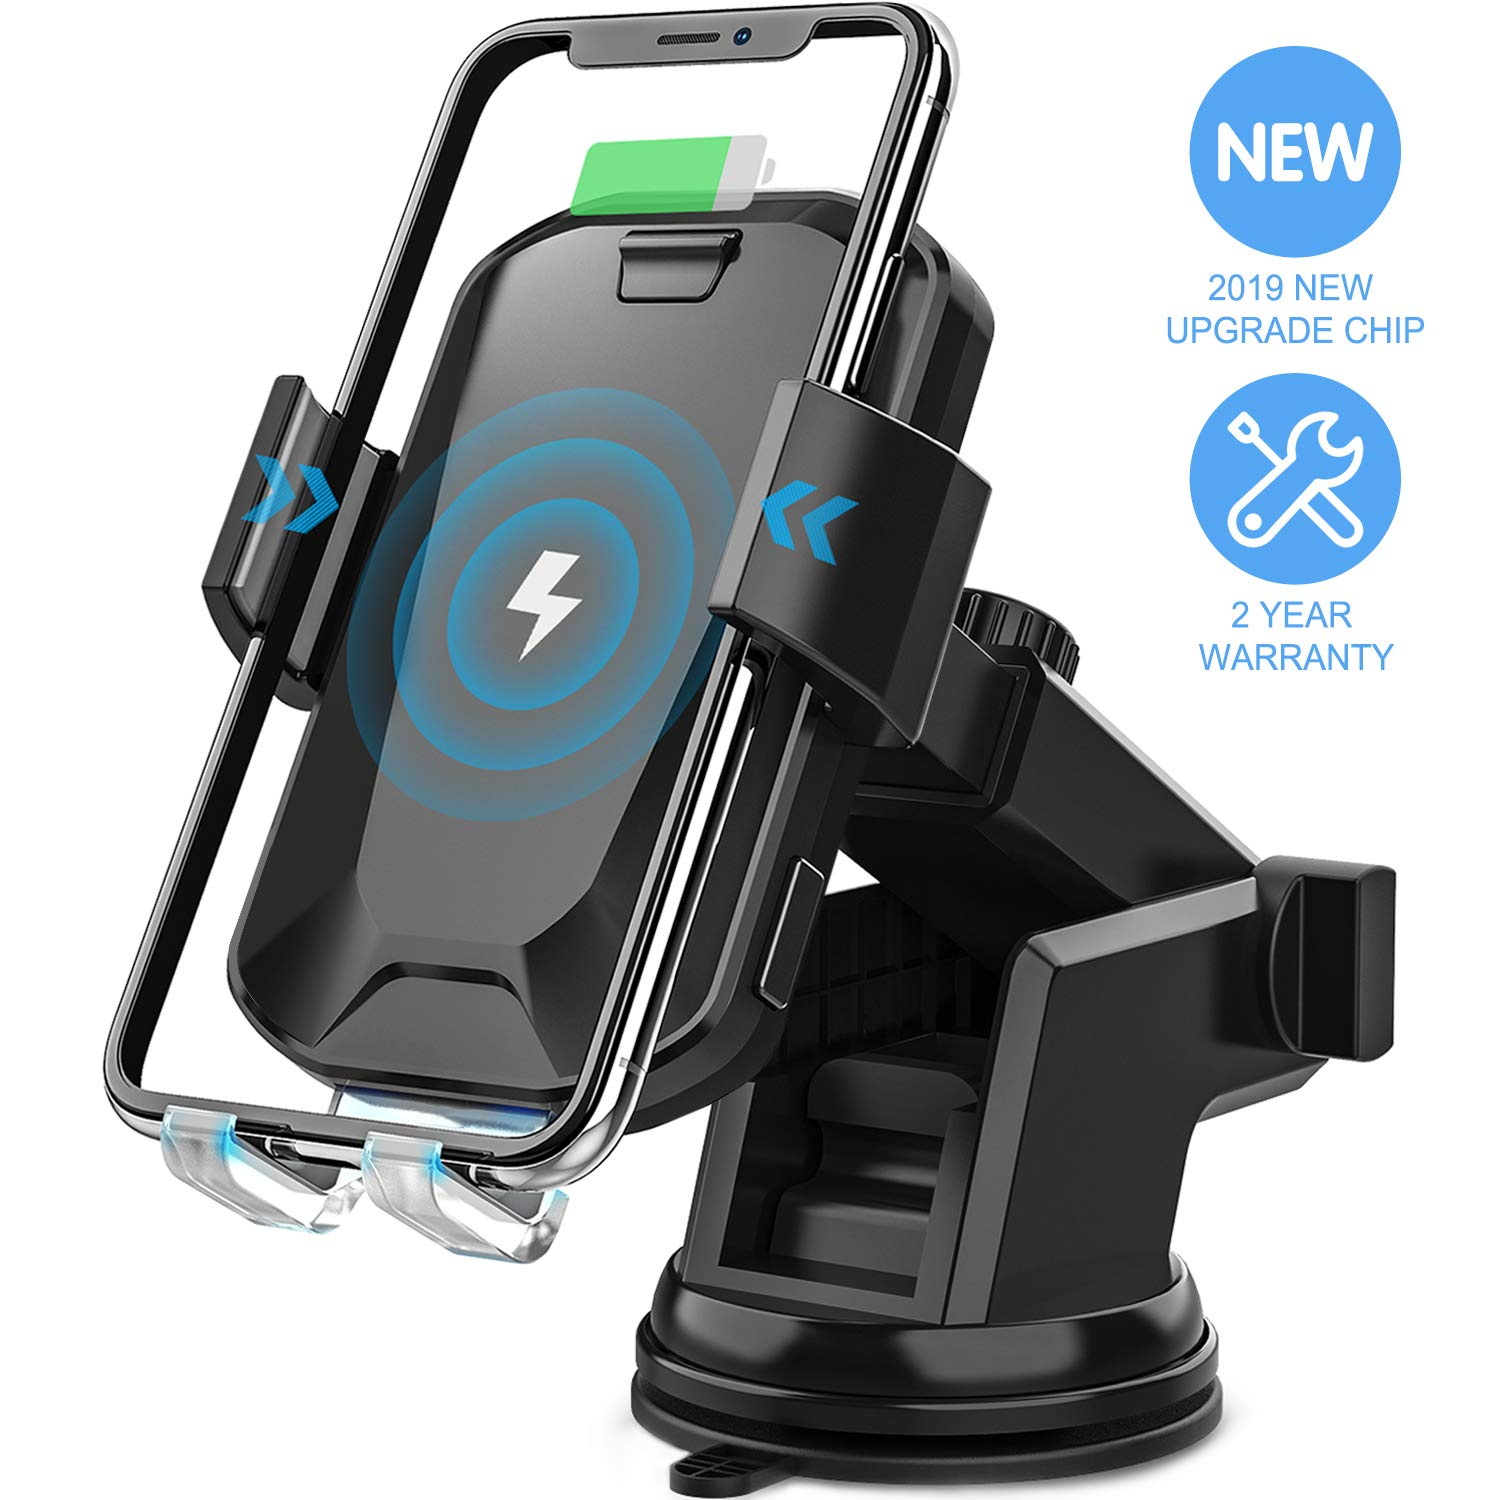 Wireless Car Charger, CHGeek 10W Qi Fast Charging Auto Clamping Car Mount Windshield Dashboard Air Vent Phone Holder for iPhone Xs Max XR X 8 8 Plus, Samsung Galaxy S10 S10+S9 S9+ S8 Note 9, etc by CHGeek